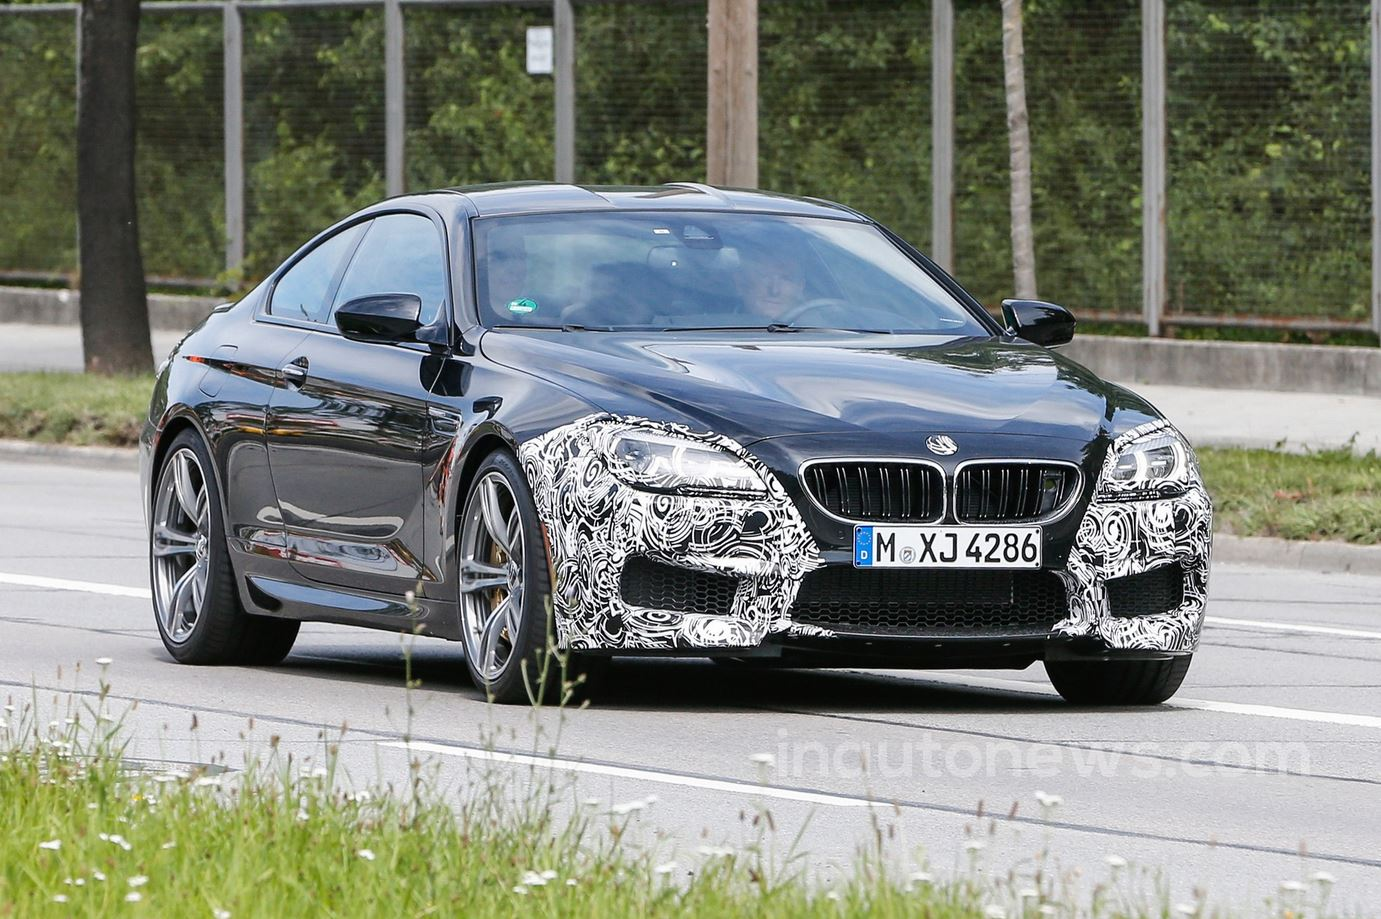 BMW M6 Facelift